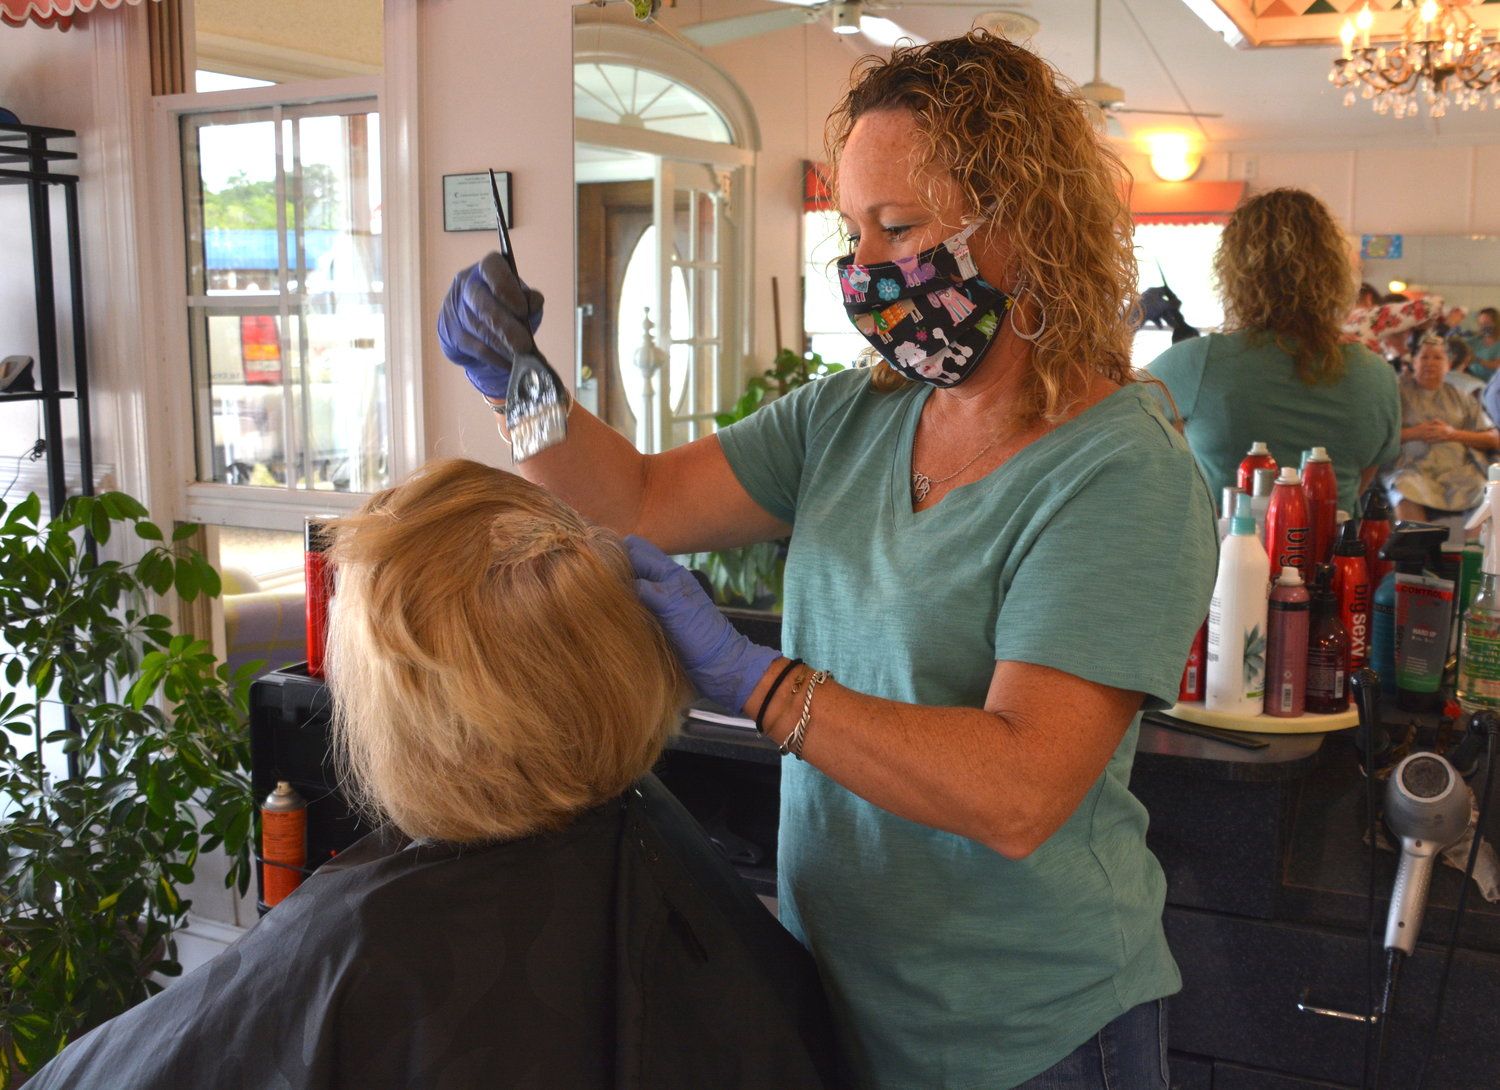 Bridget Lee works on a client's hair at Plain & Fancy Tuesday. She reopened her beauty salon this week after it was shuttered in March to prevent the spread of COVID-19.